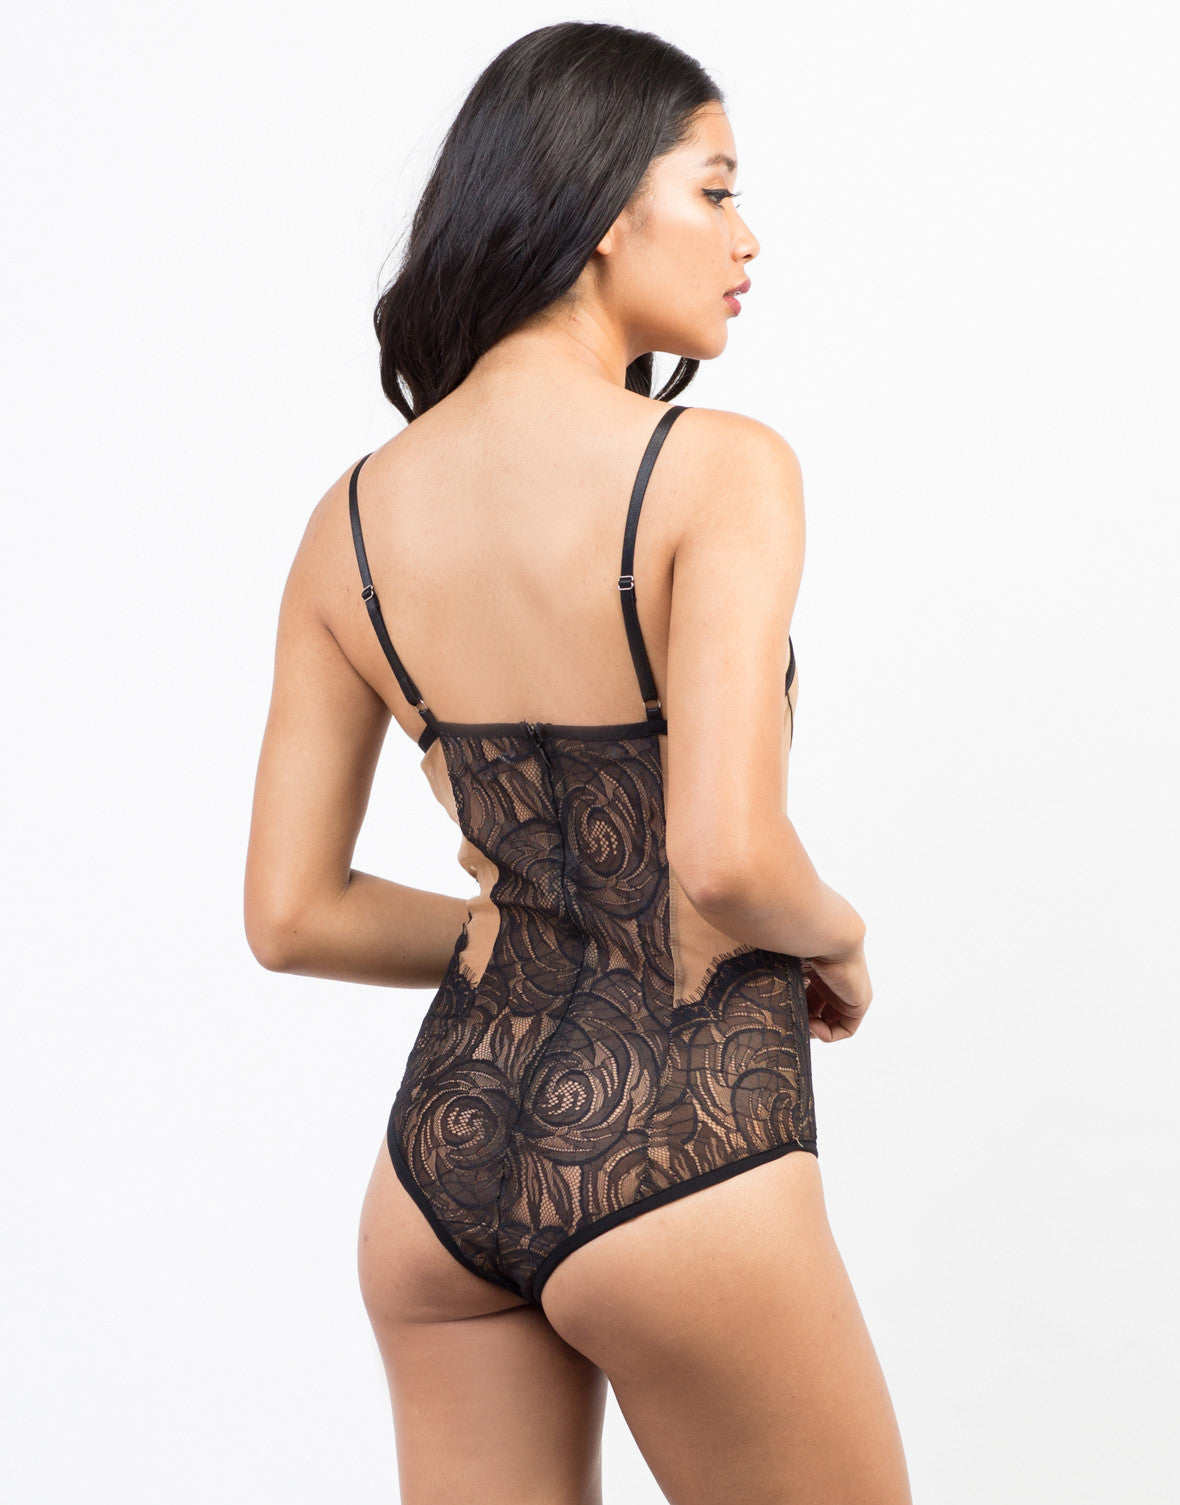 Back View of Romantic Lacey Bodysuit